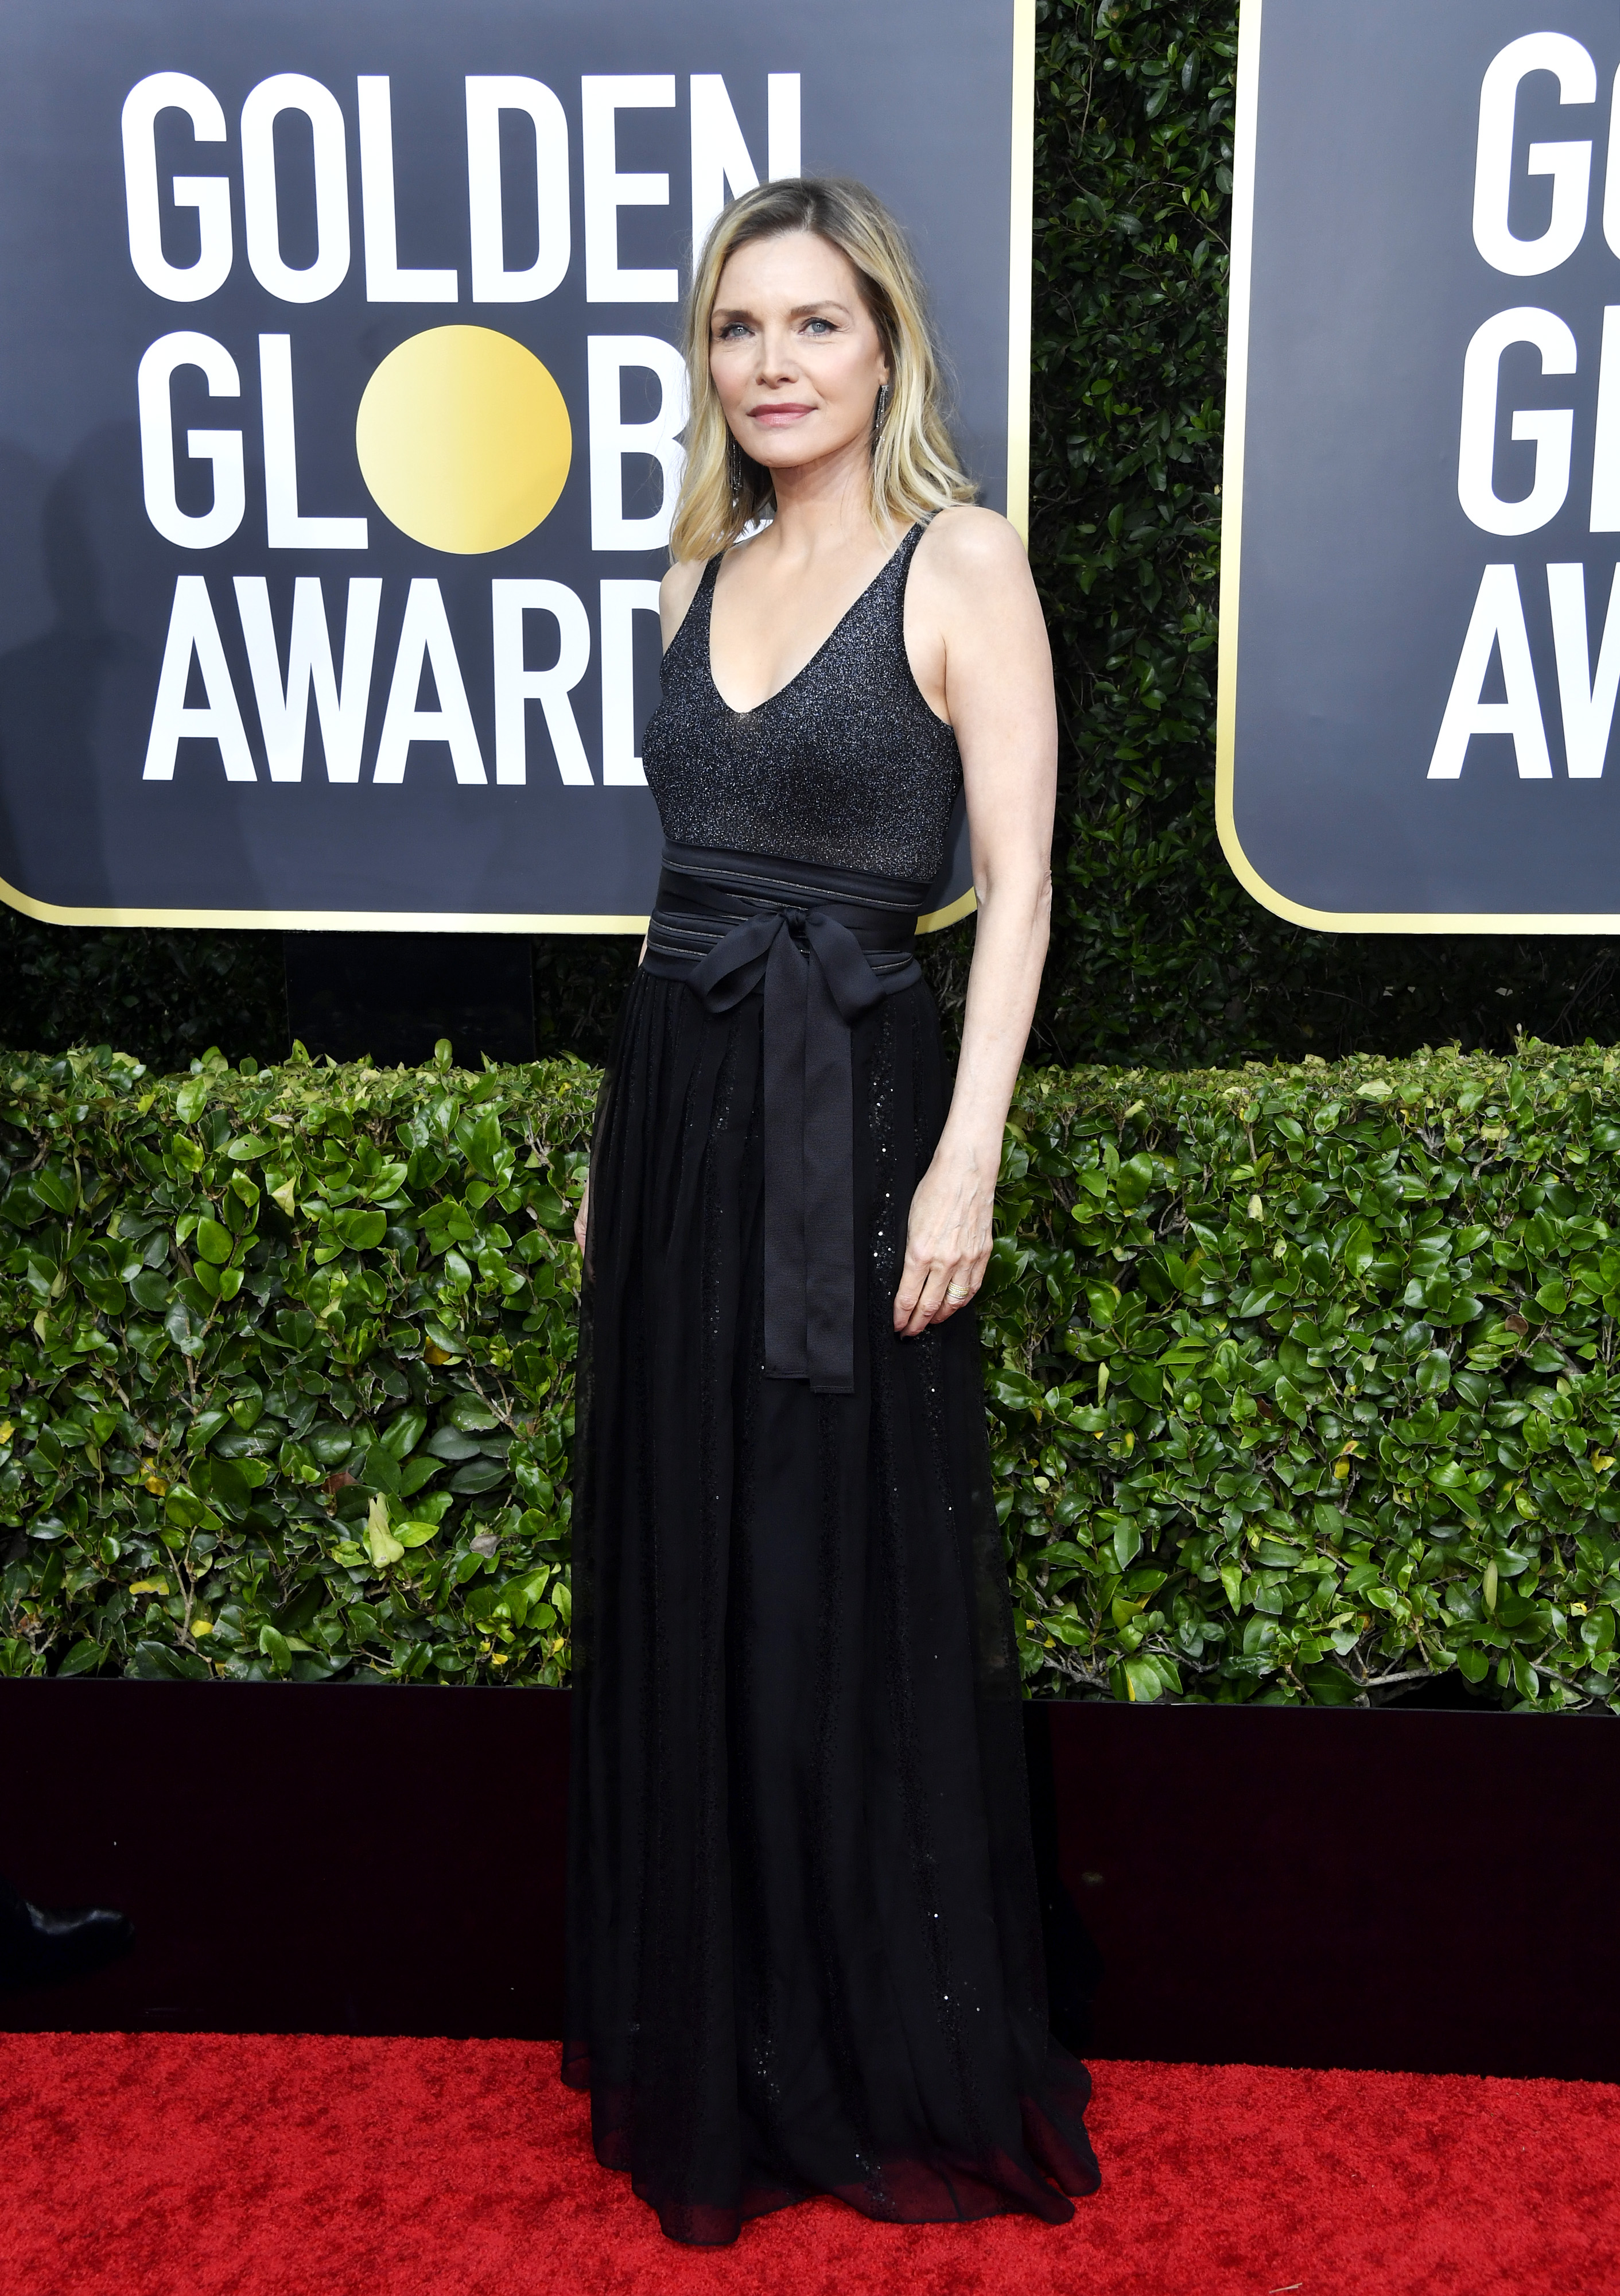 BEVERLY HILLS, CALIFORNIA - JANUARY 05: Michelle Pfeiffer attends the 77th Annual Golden Globe Awards at The Beverly Hilton Hotel on January 05, 2020 in Beverly Hills, California. (Photo by Frazer Harrison/Getty Images)